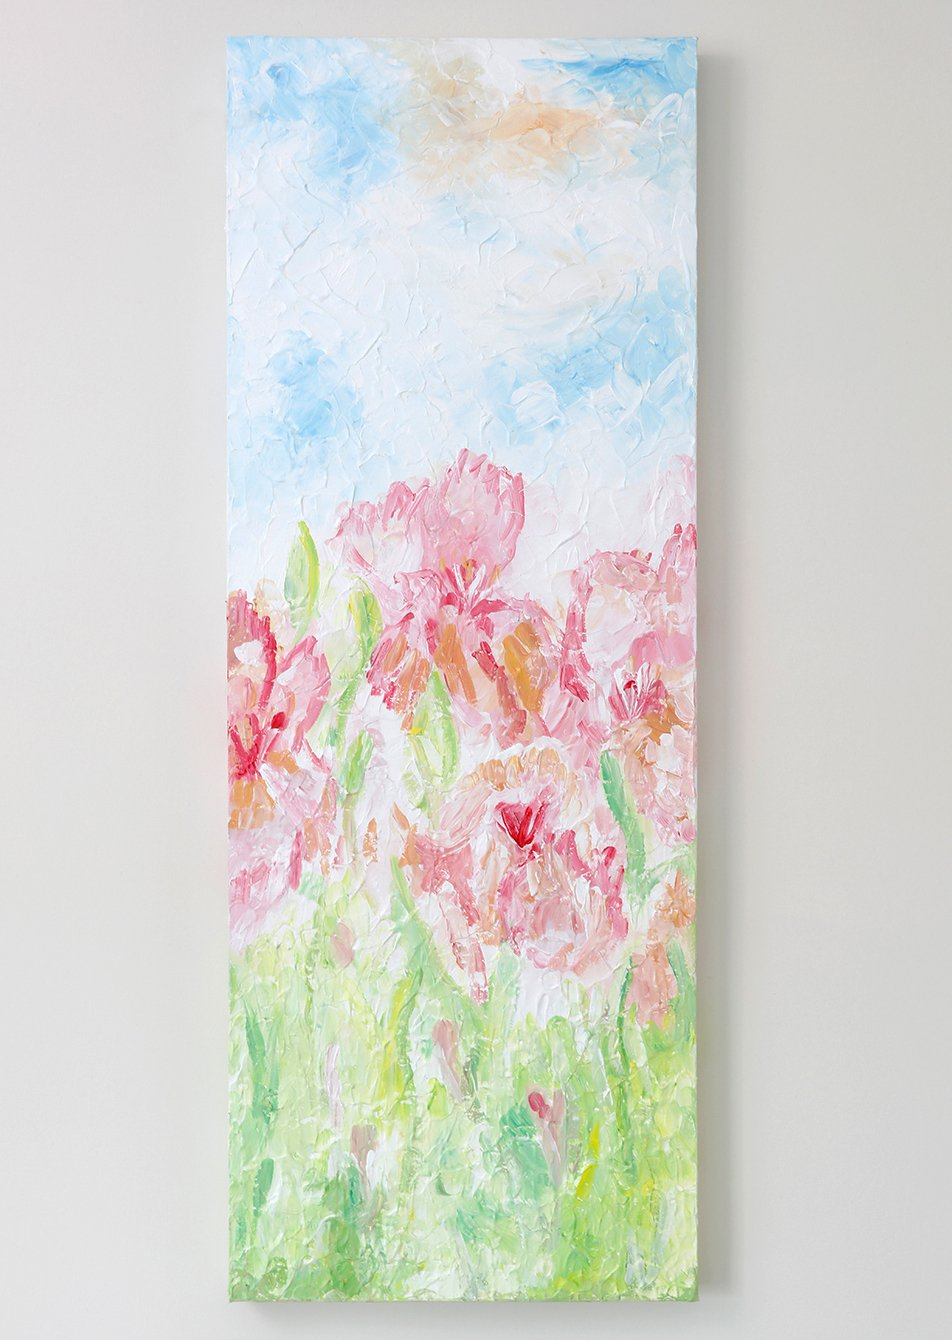 size 80 x 30cm Abstract flowers painting on canvas with texture